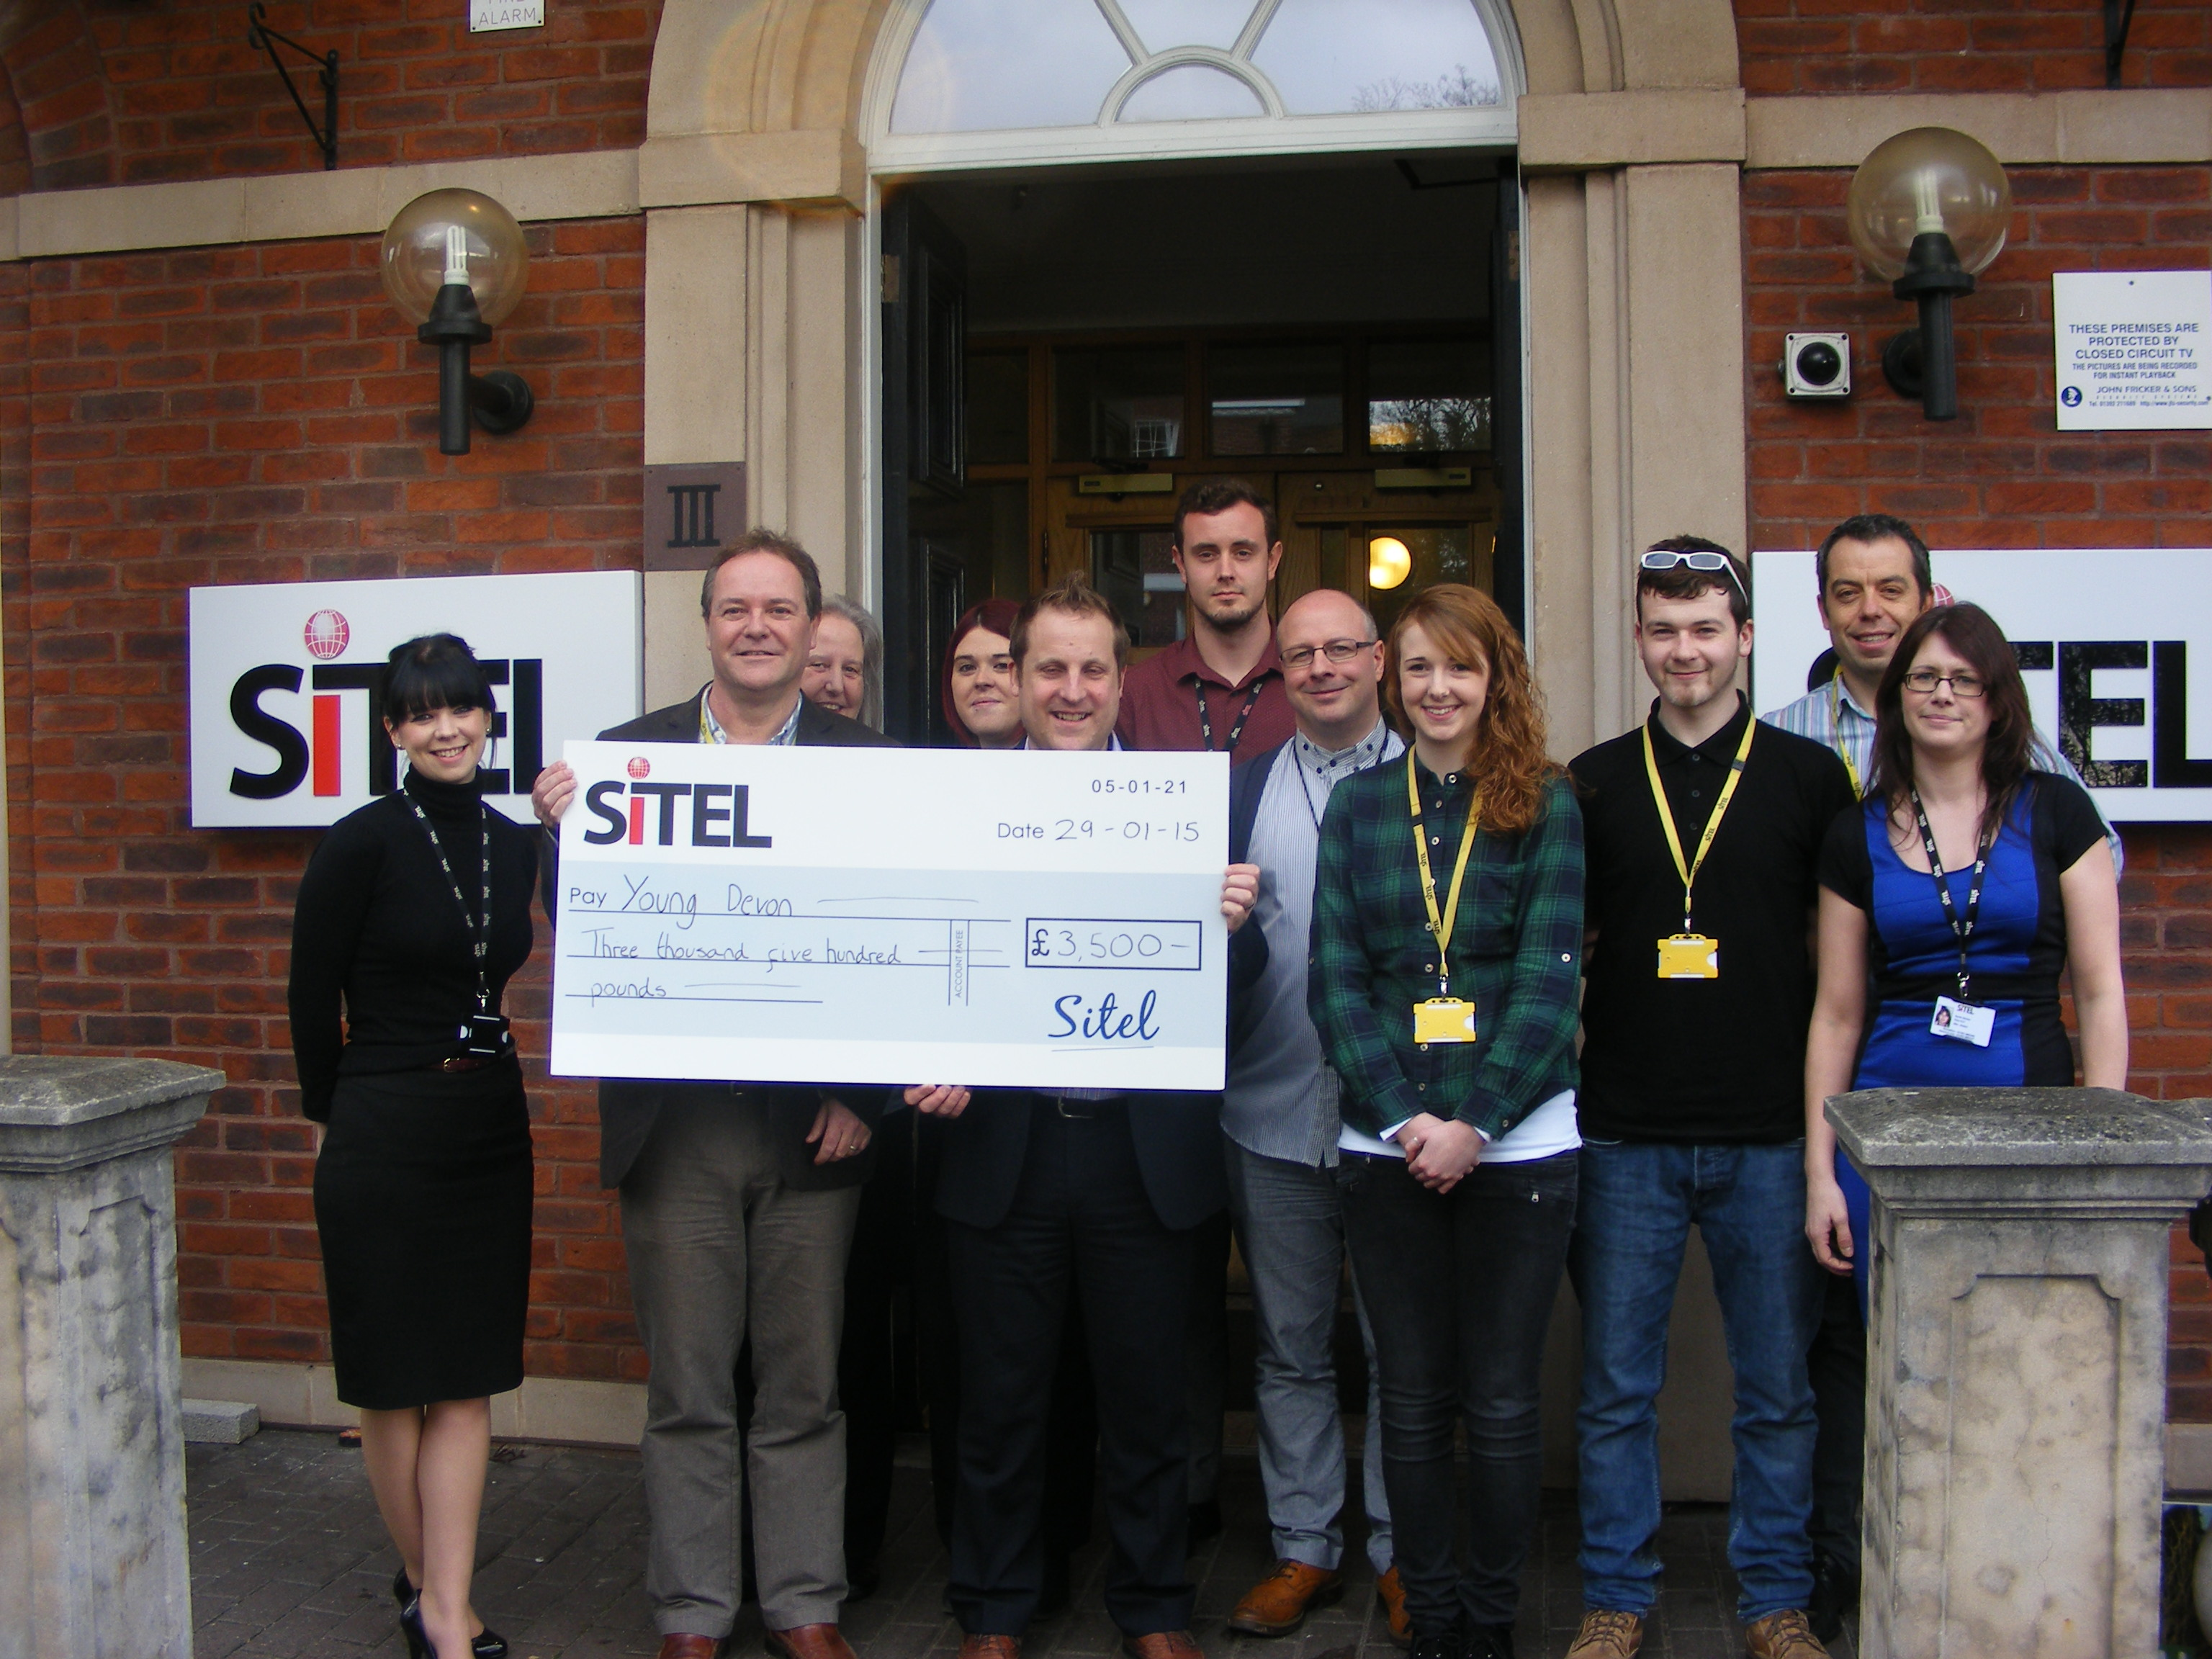 Sitel Exeter names Young Devon as Charity of the Year | The Exeter Daily